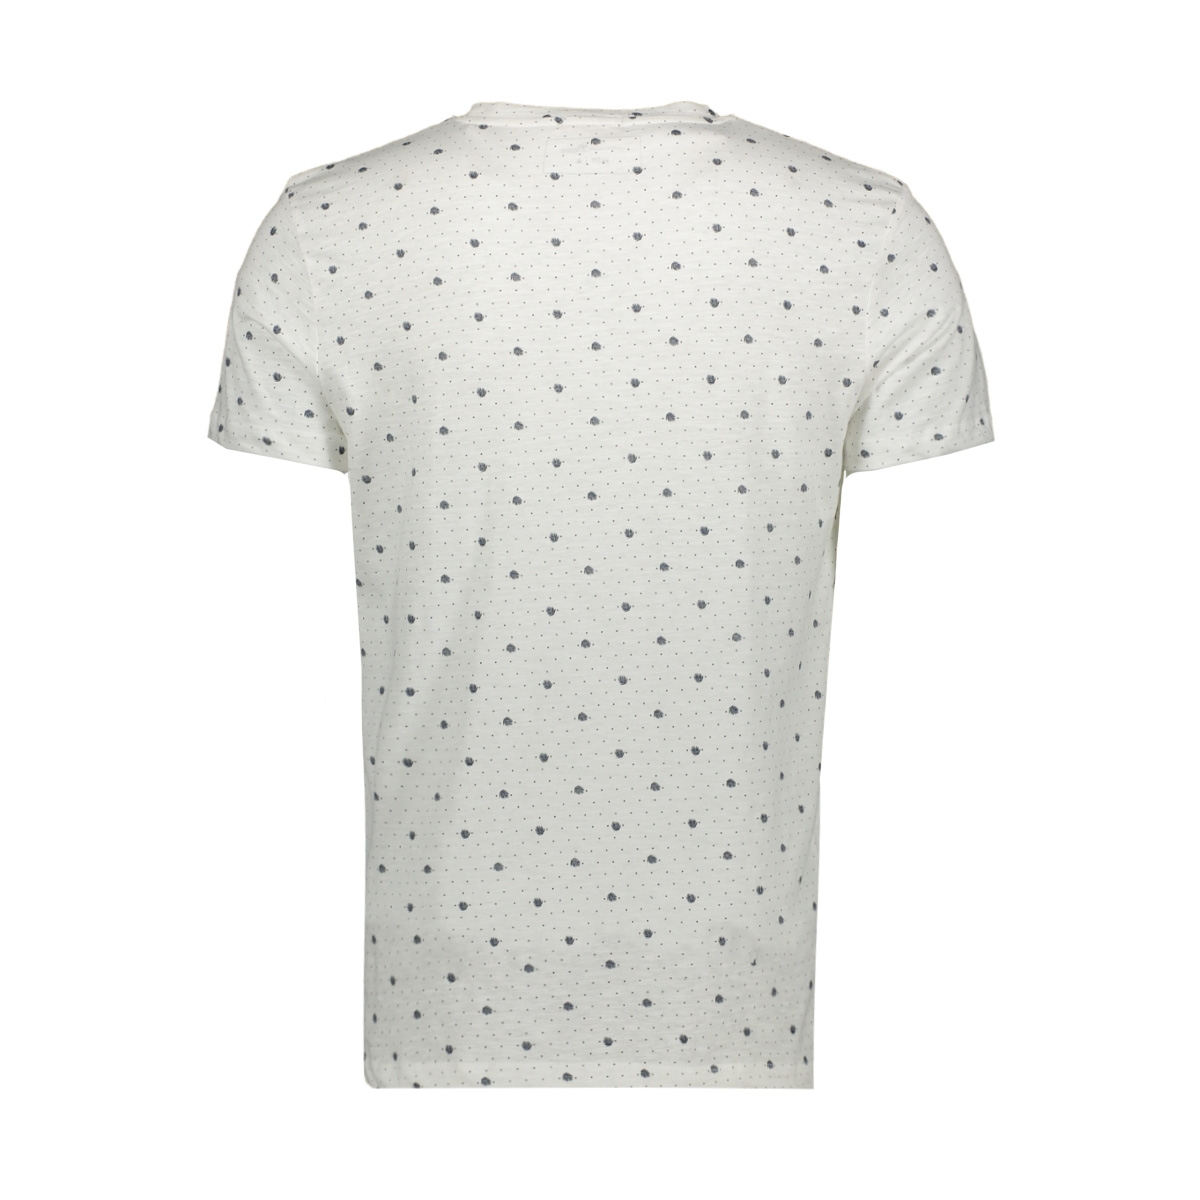 t shirt met all over print 1019087xx12 tom tailor t-shirt 23121